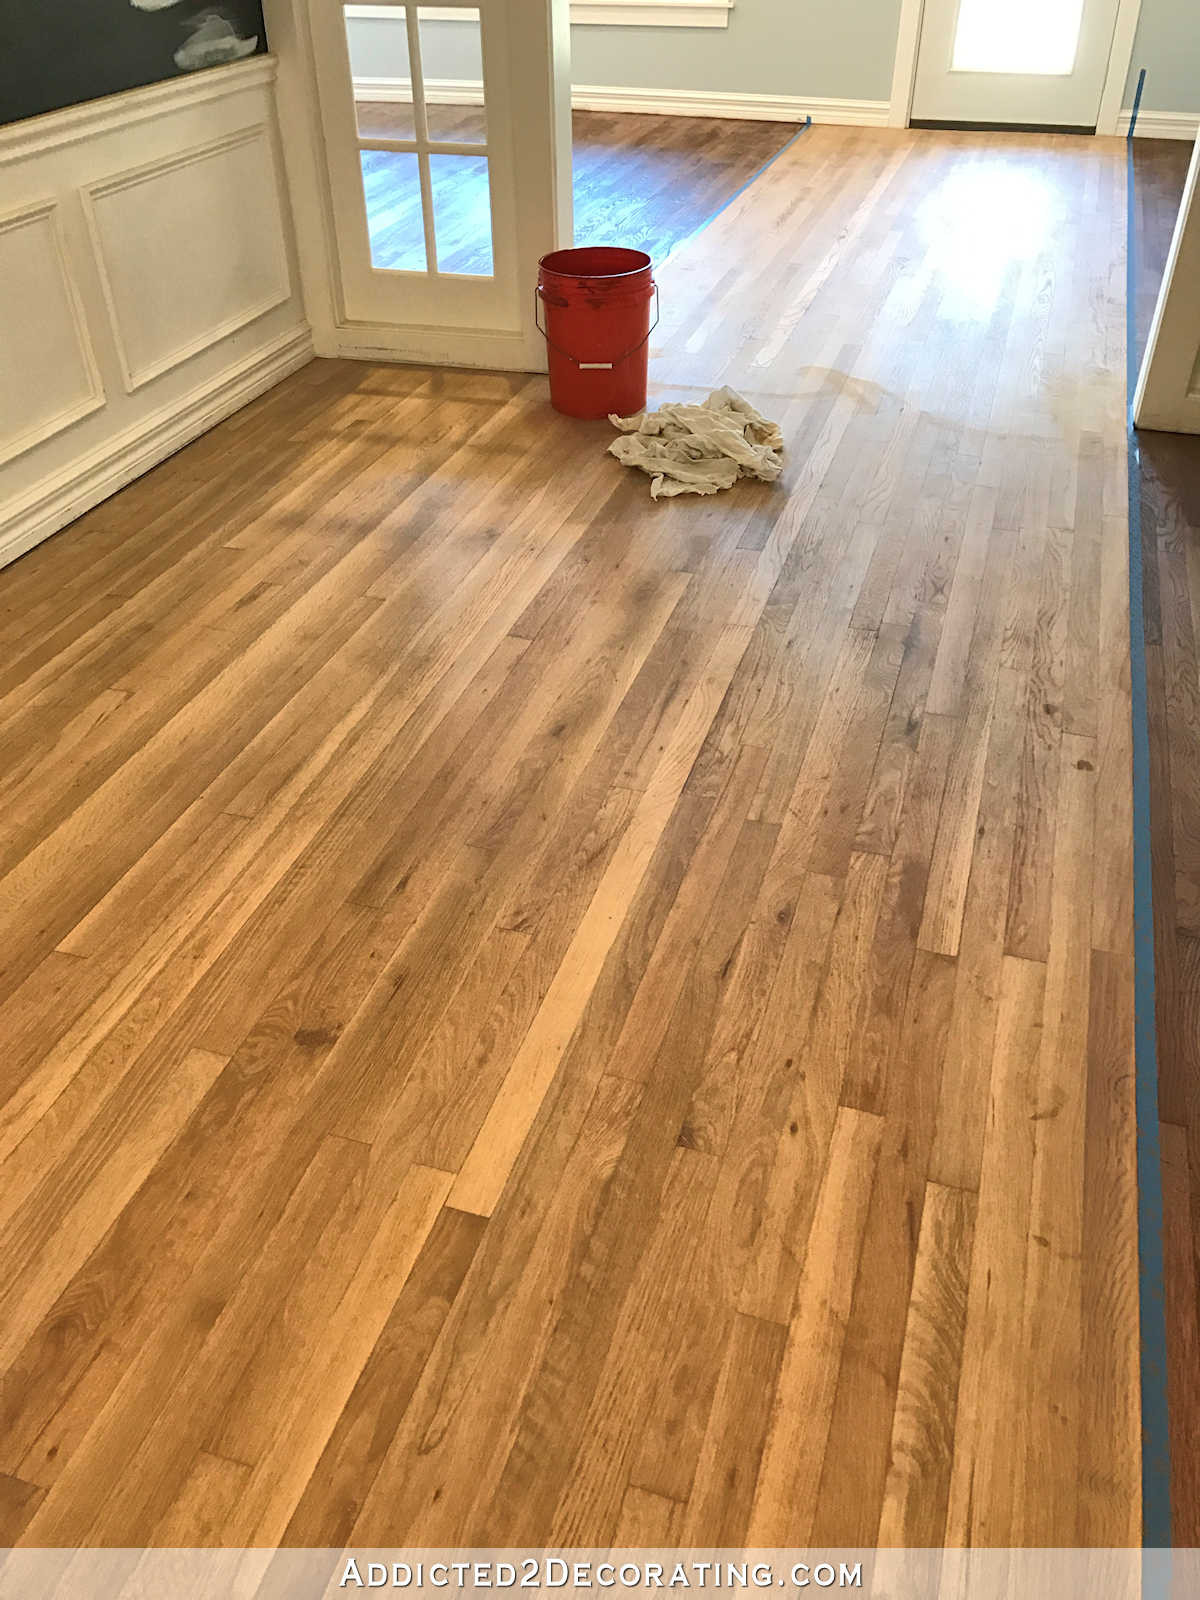 uneven hardwood floor repair of adventures in staining my red oak hardwood floors products process in staining red oak hardwood floors 8 entryway and music room wood conditioner